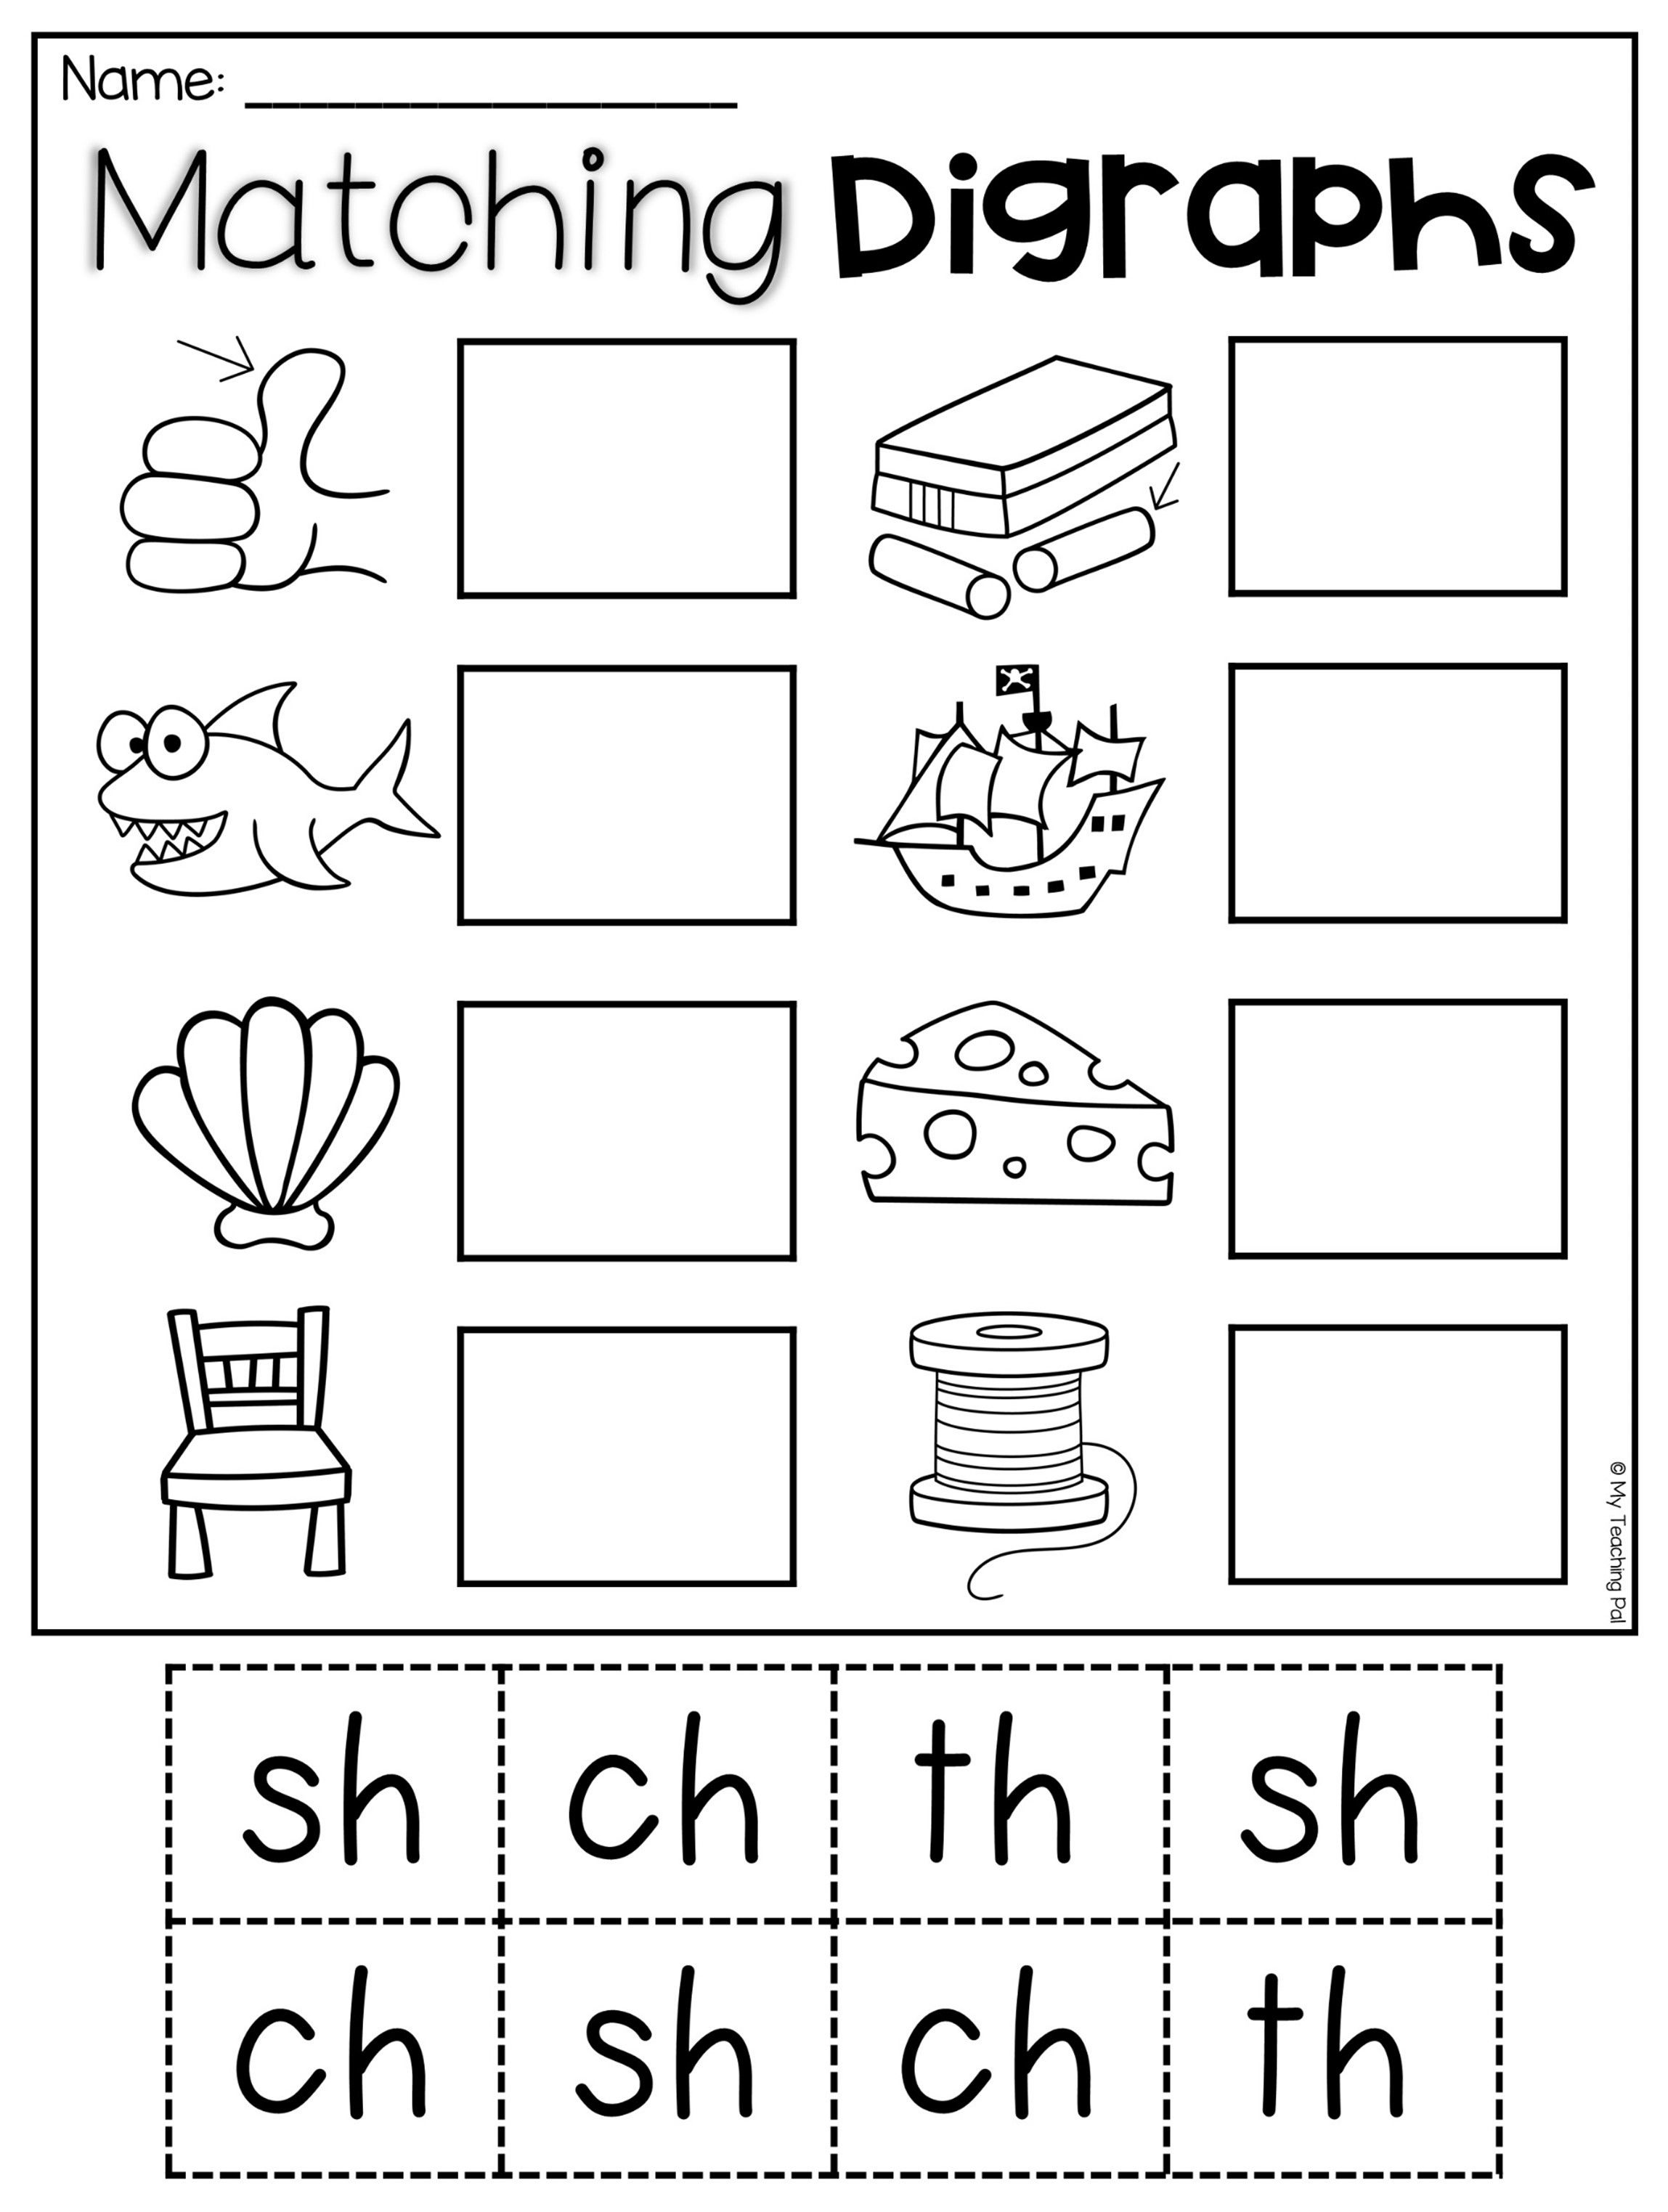 Matching Digraphs Worksheet For Sh Ch Th This Packet Is Jammed Full Of Worksheets To Help